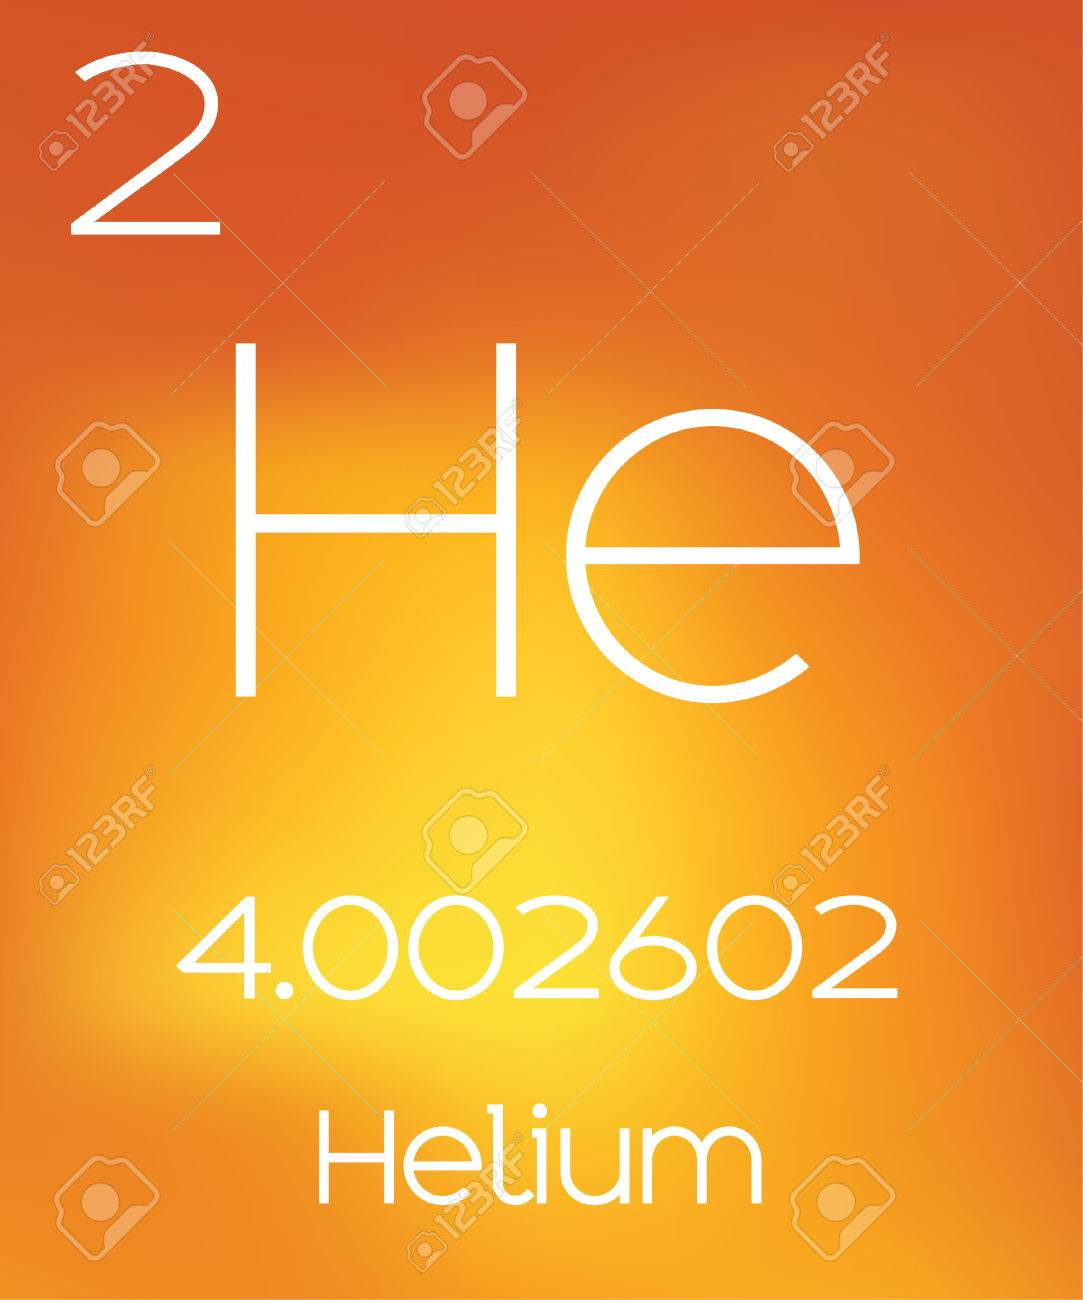 an informative illustration of the periodic element helium stock